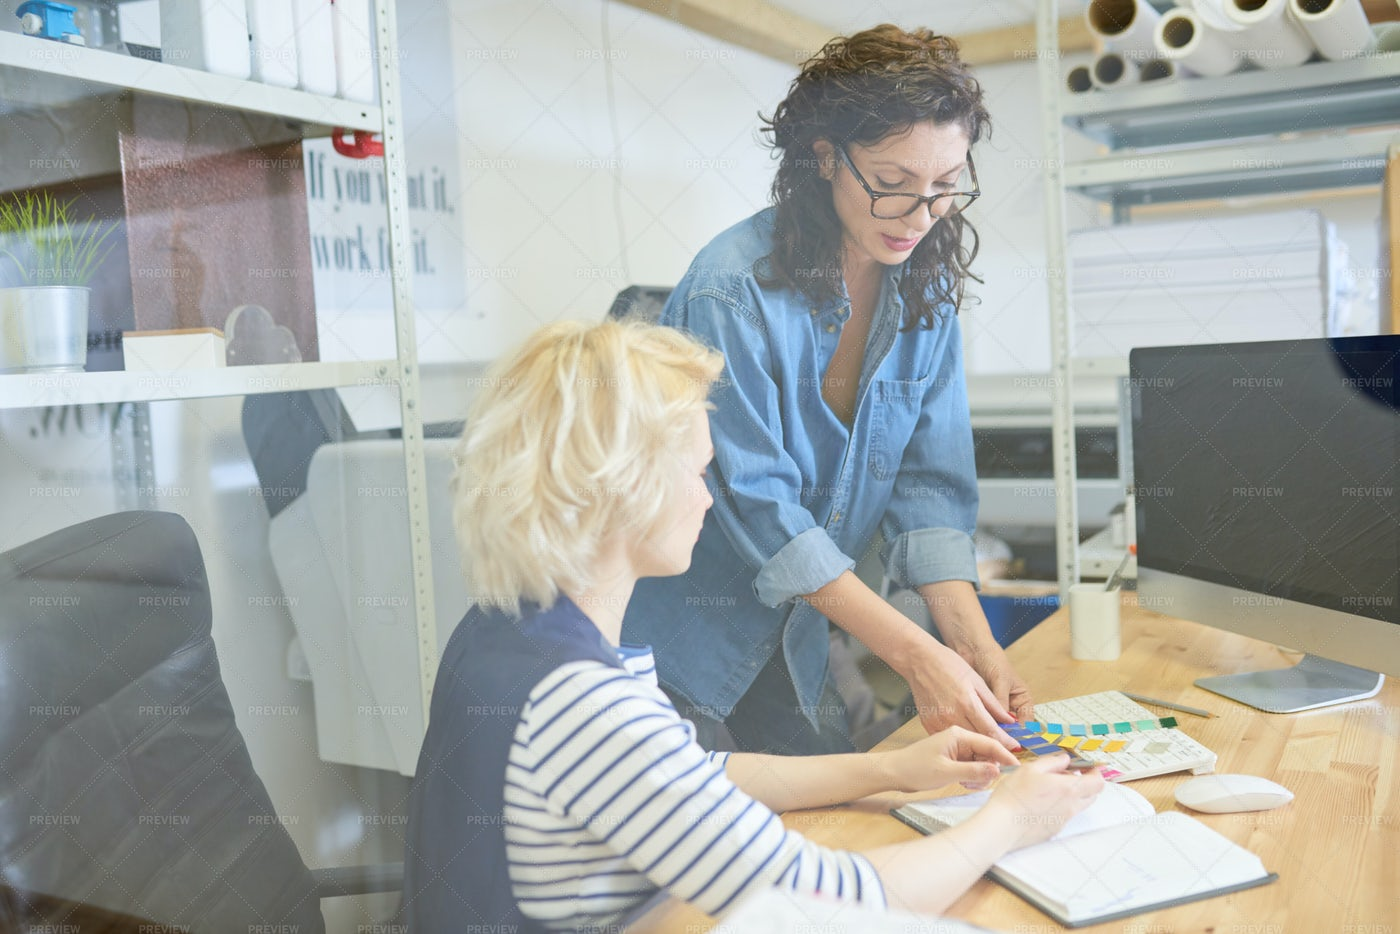 Women Working On Design Project: Stock Photos